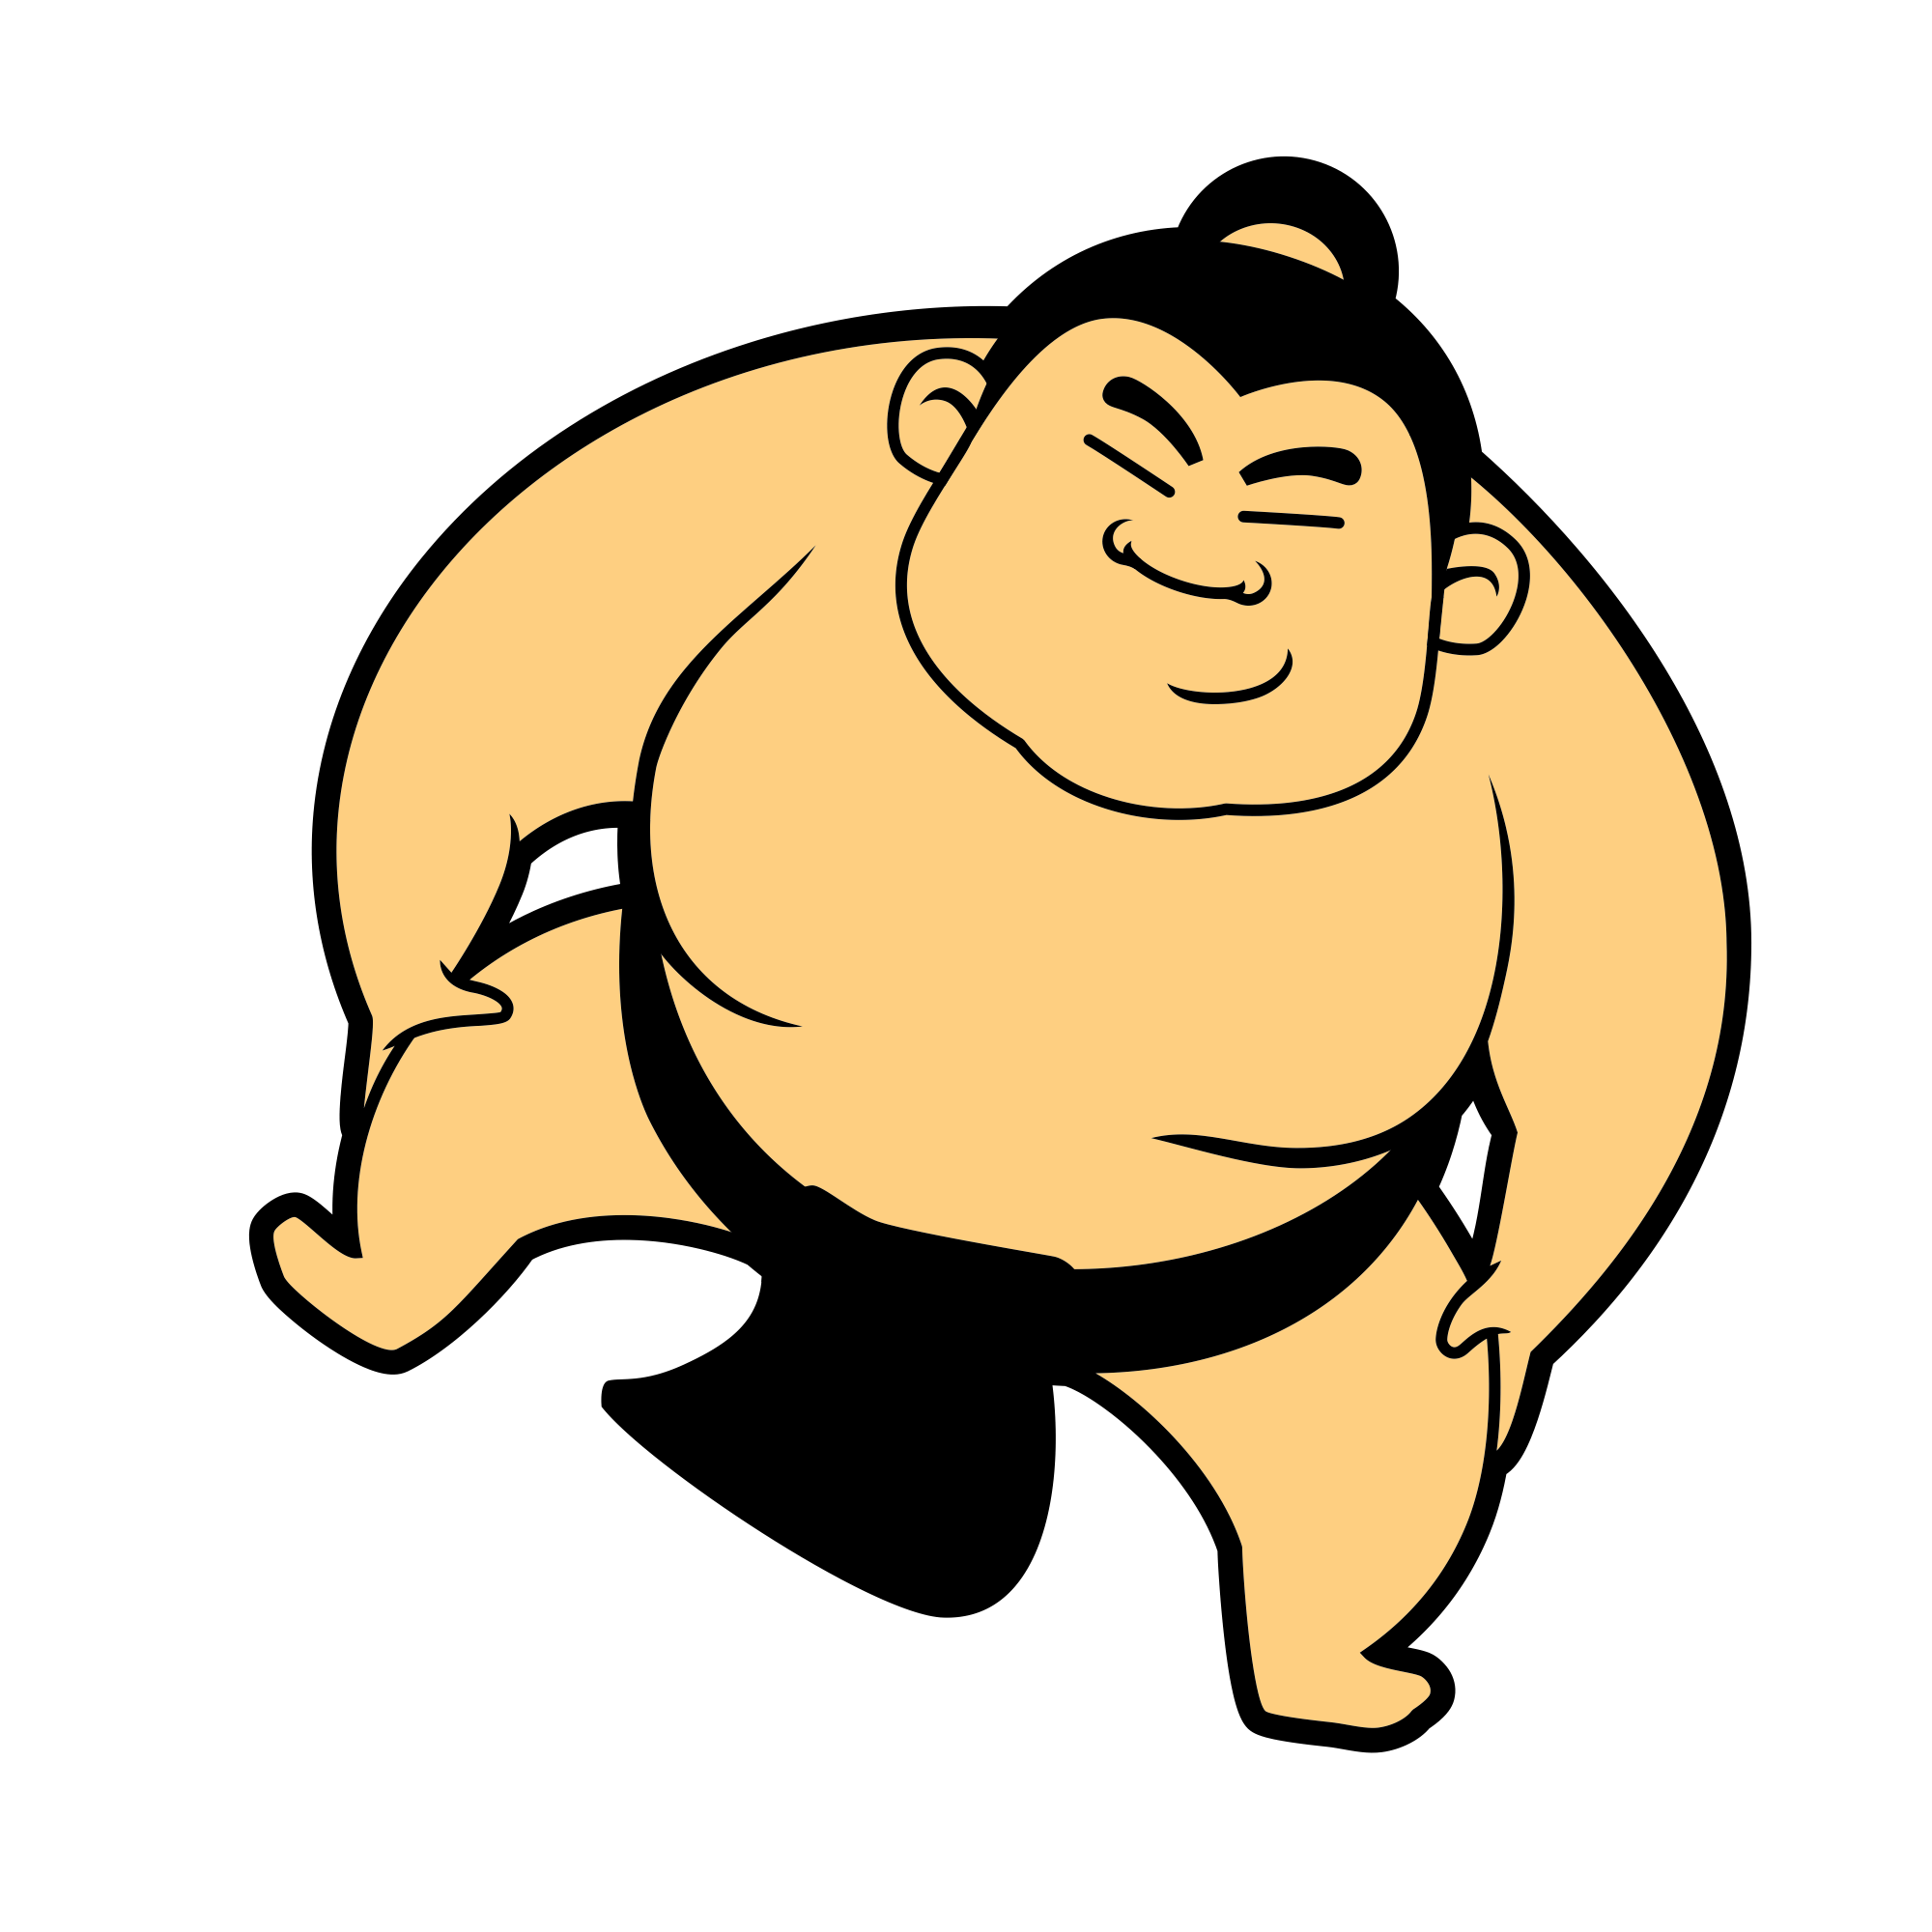 Wrestlers clipart transparent background. Sumo png stickpng